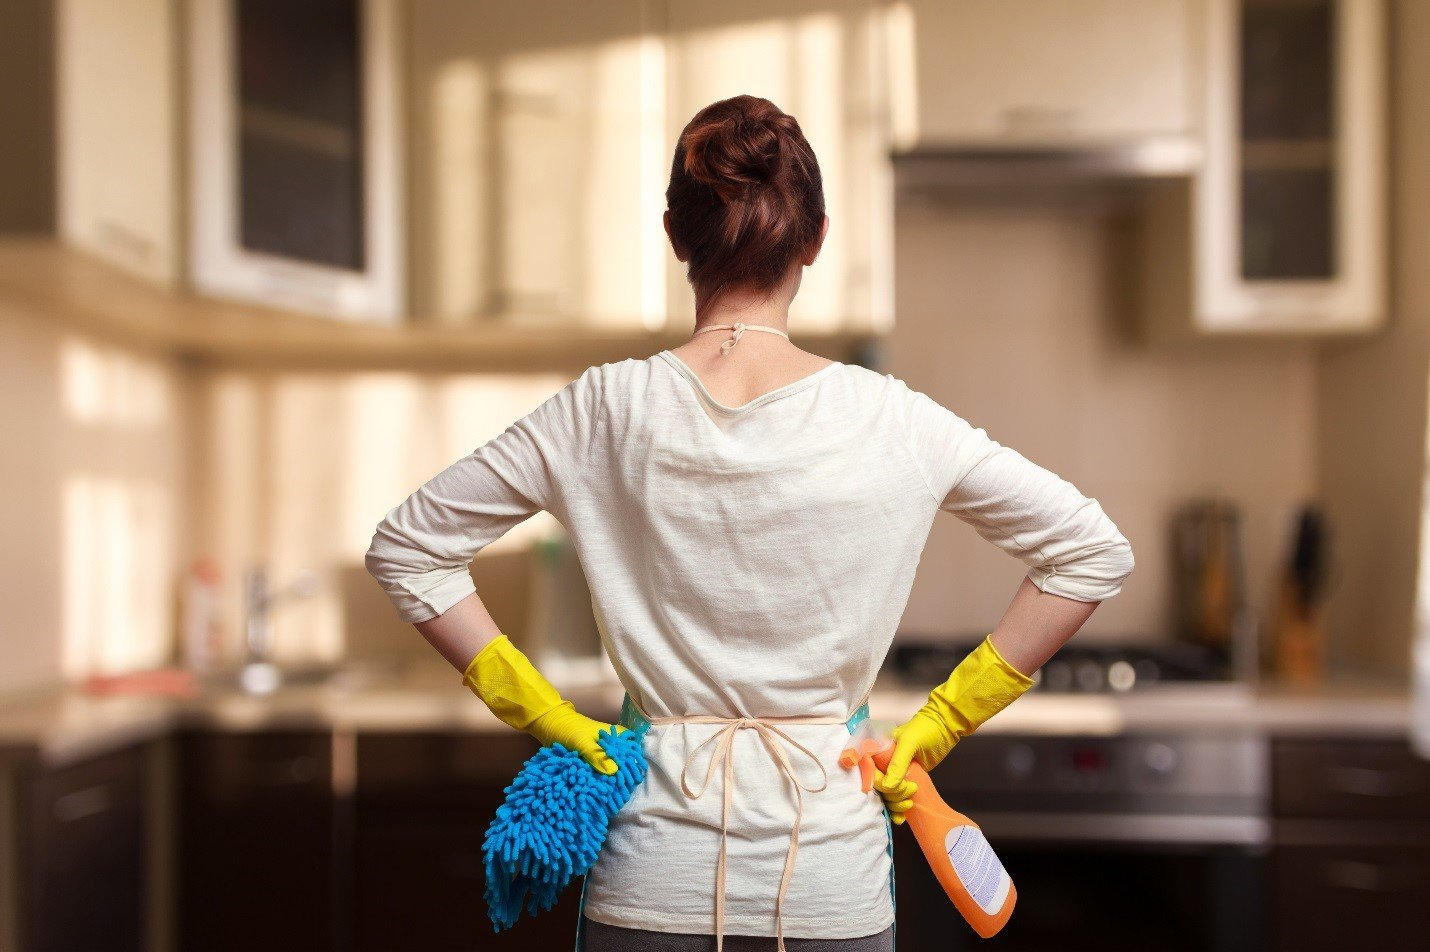 Over-Sanitizing: The Health Effects of Cleaning Chemical Exposure